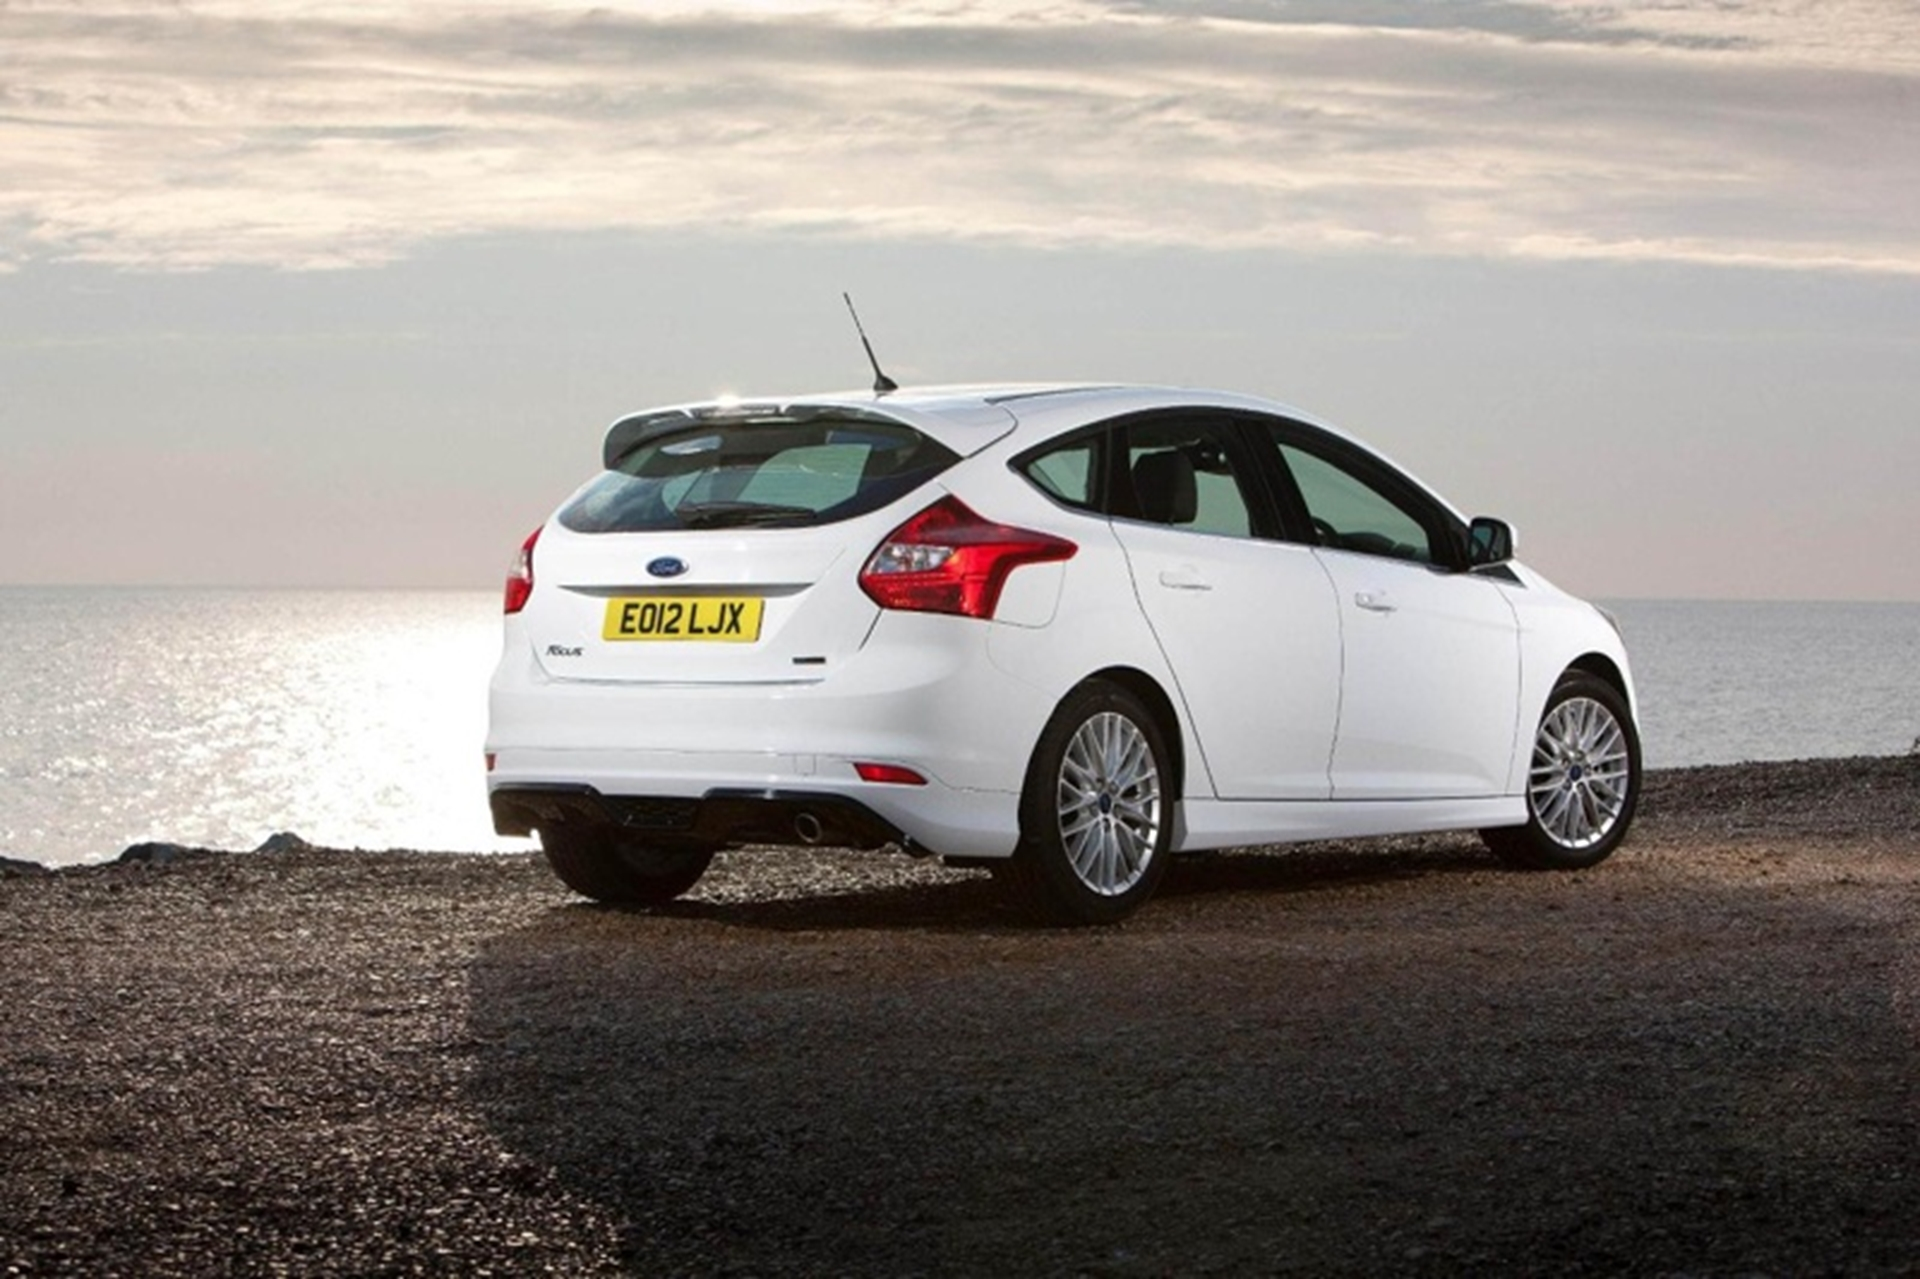 Ford Focus is the UK second best-selling vehicle year to date